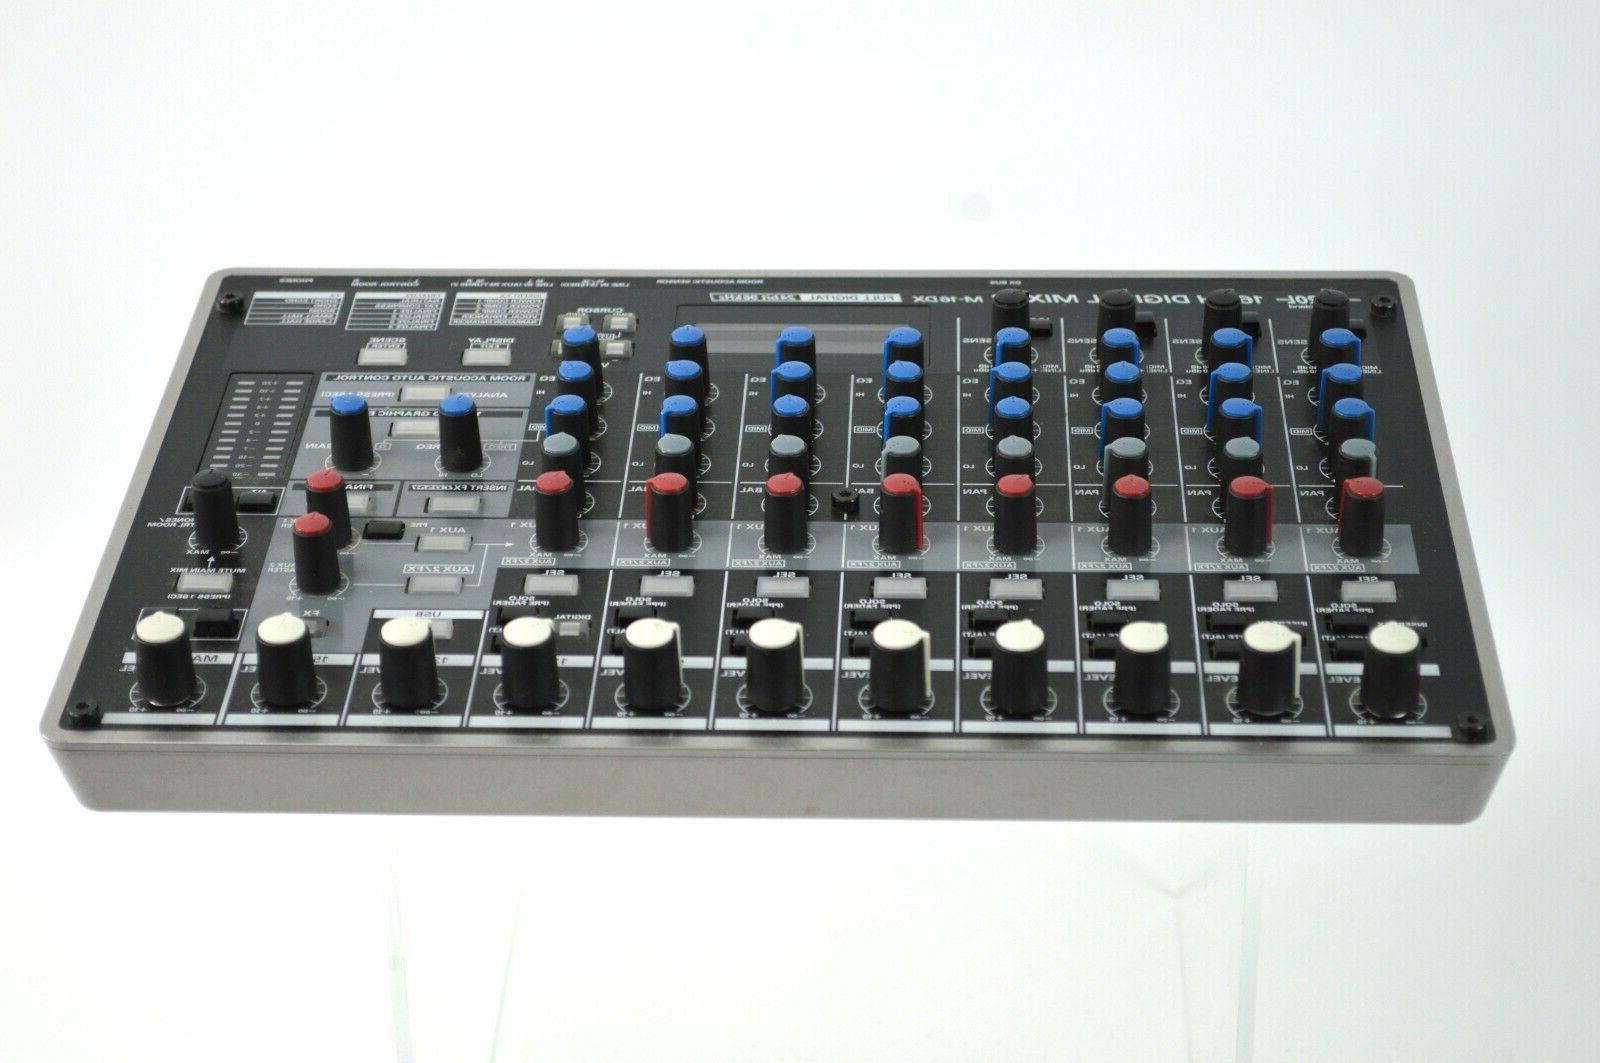 CHANNEL DIGITAL AND AUDIO INTERFACE w/ Manual